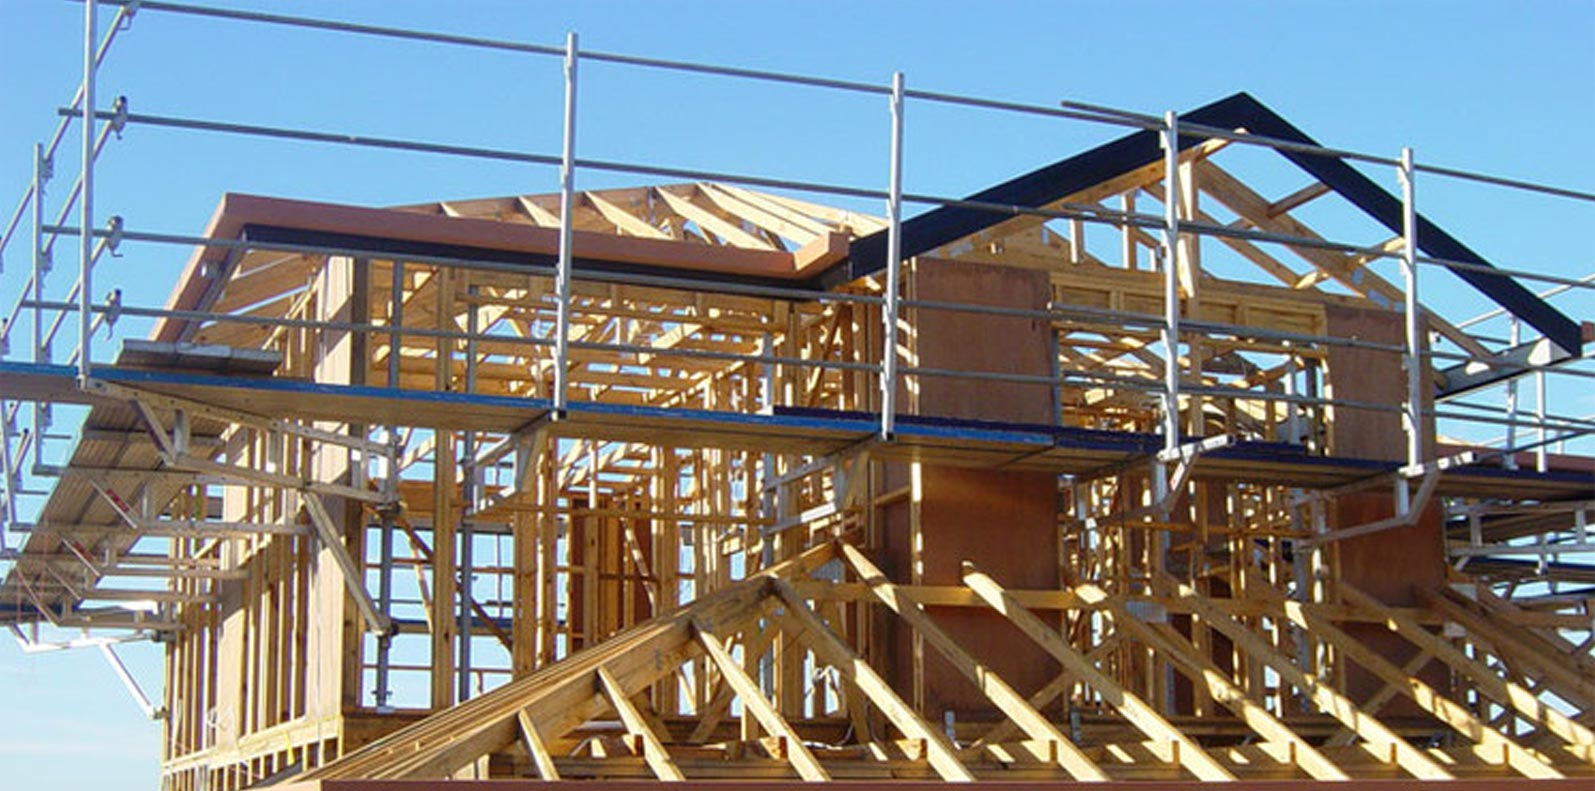 Safety Tips for Working with Scaffolding: Managing The Risks